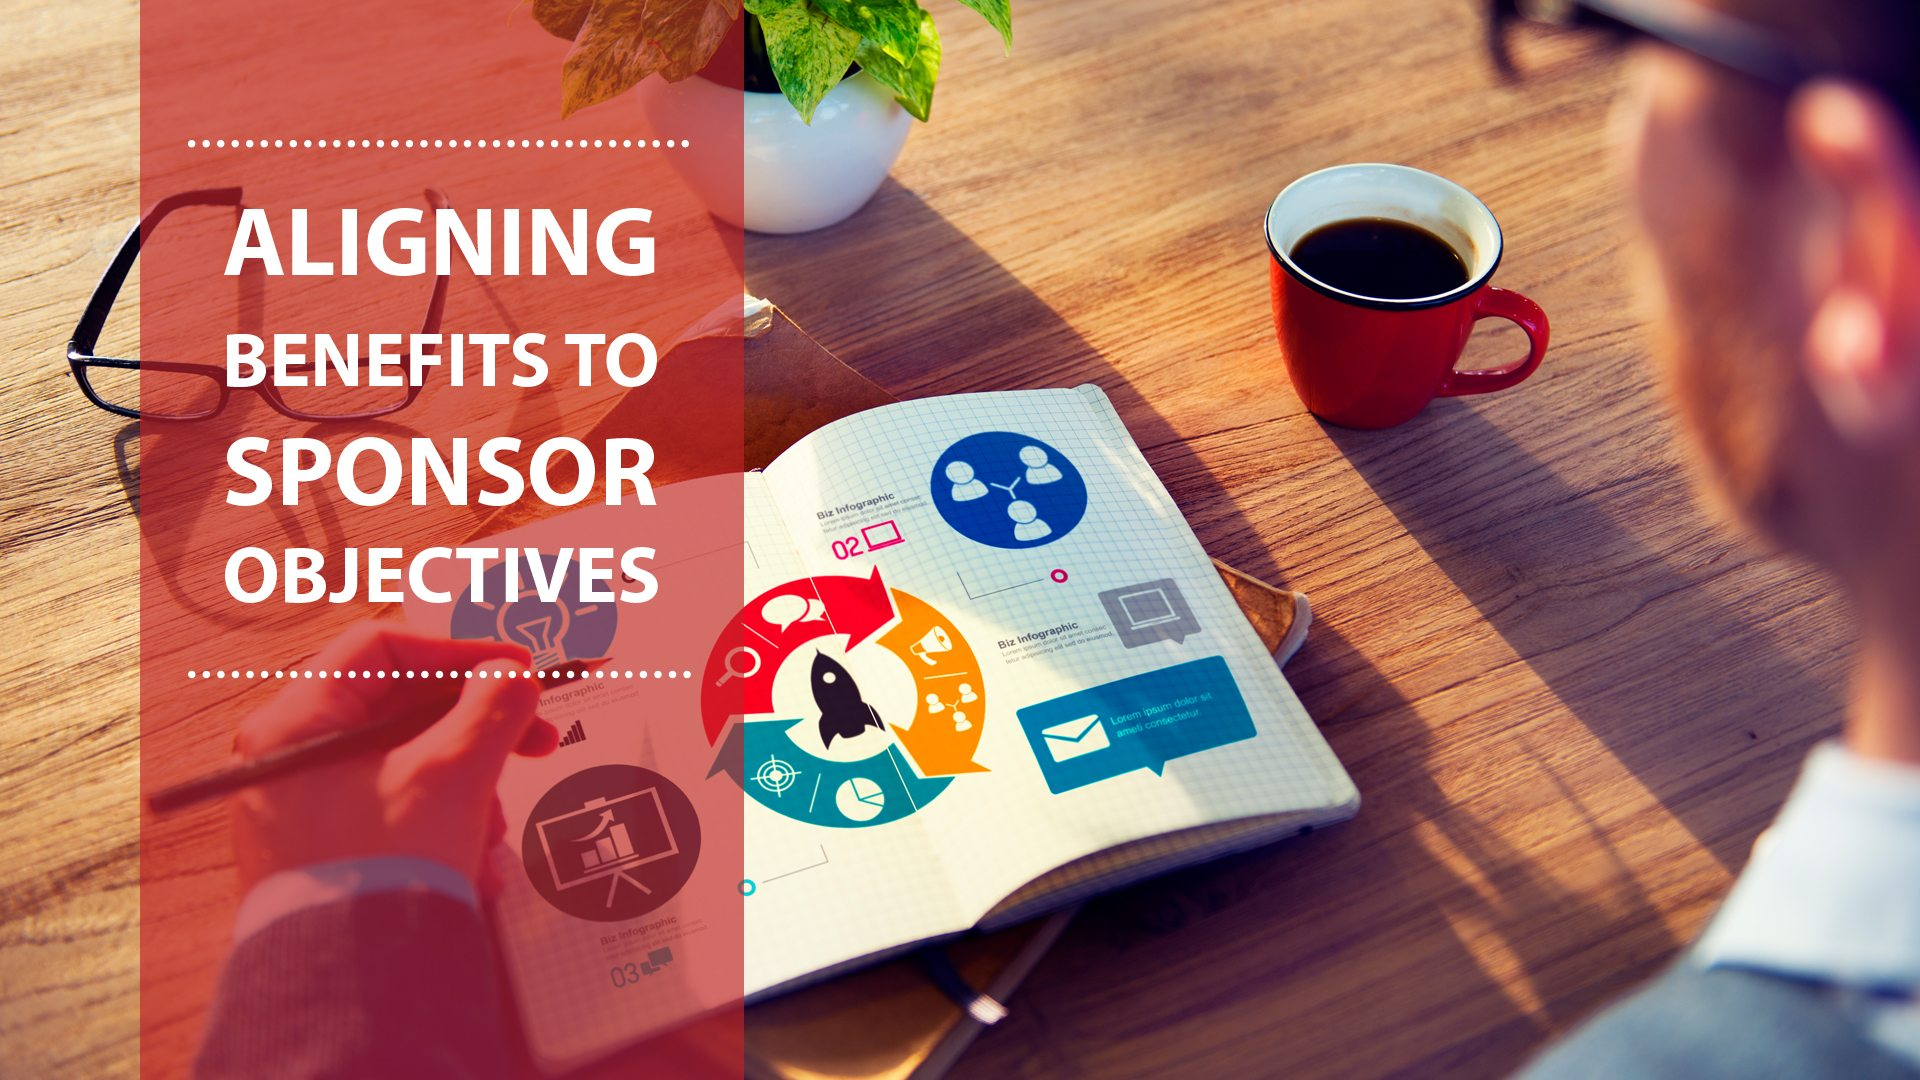 Aligning Benefits To Sponsor Objectives